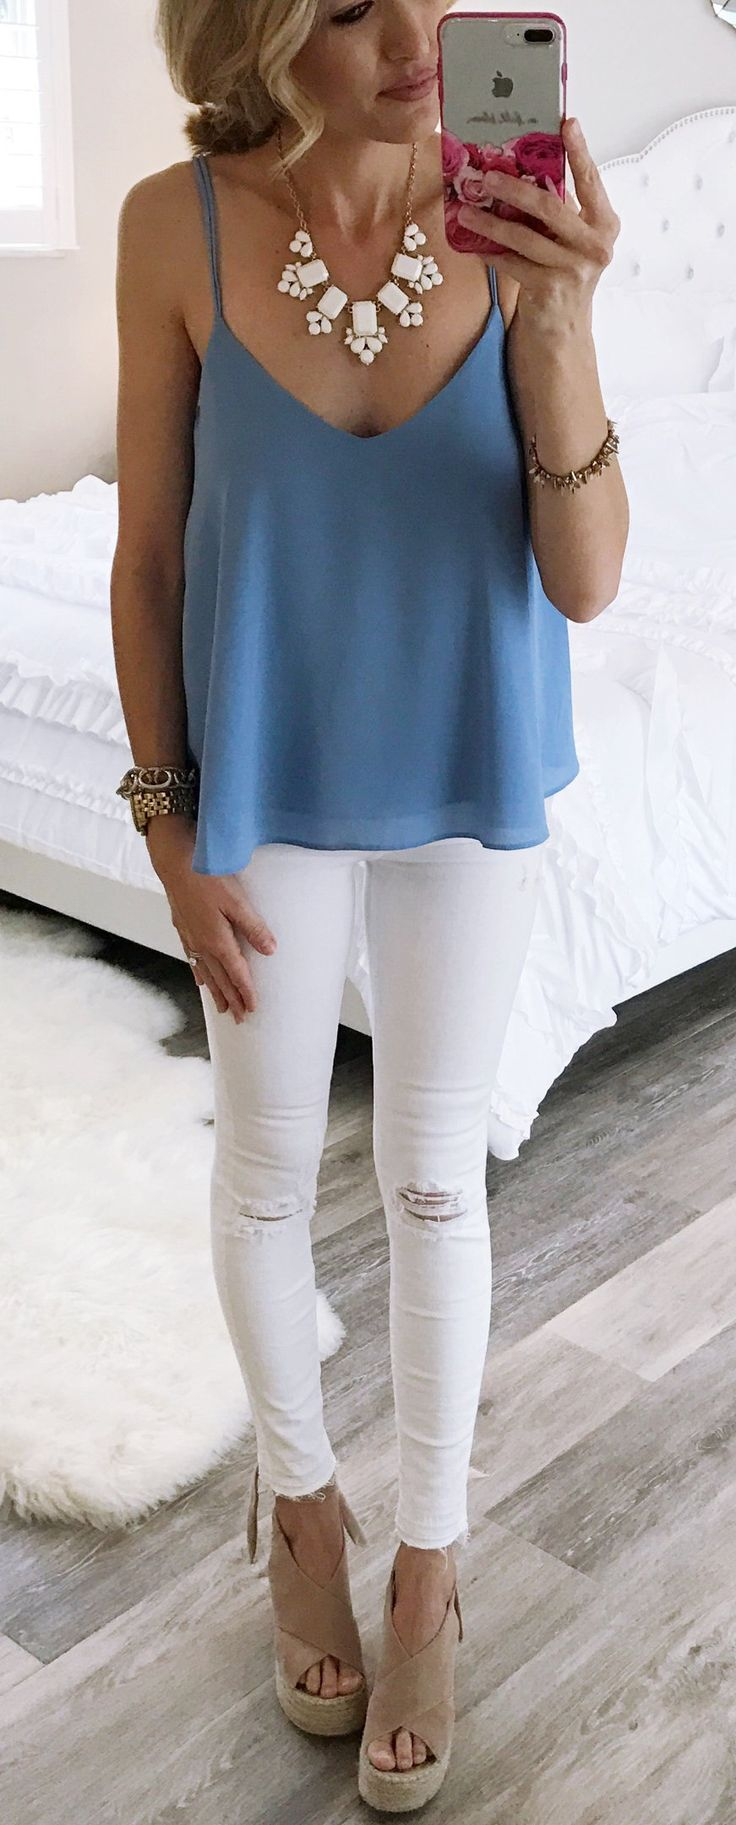 White skinny jeans evening outfit